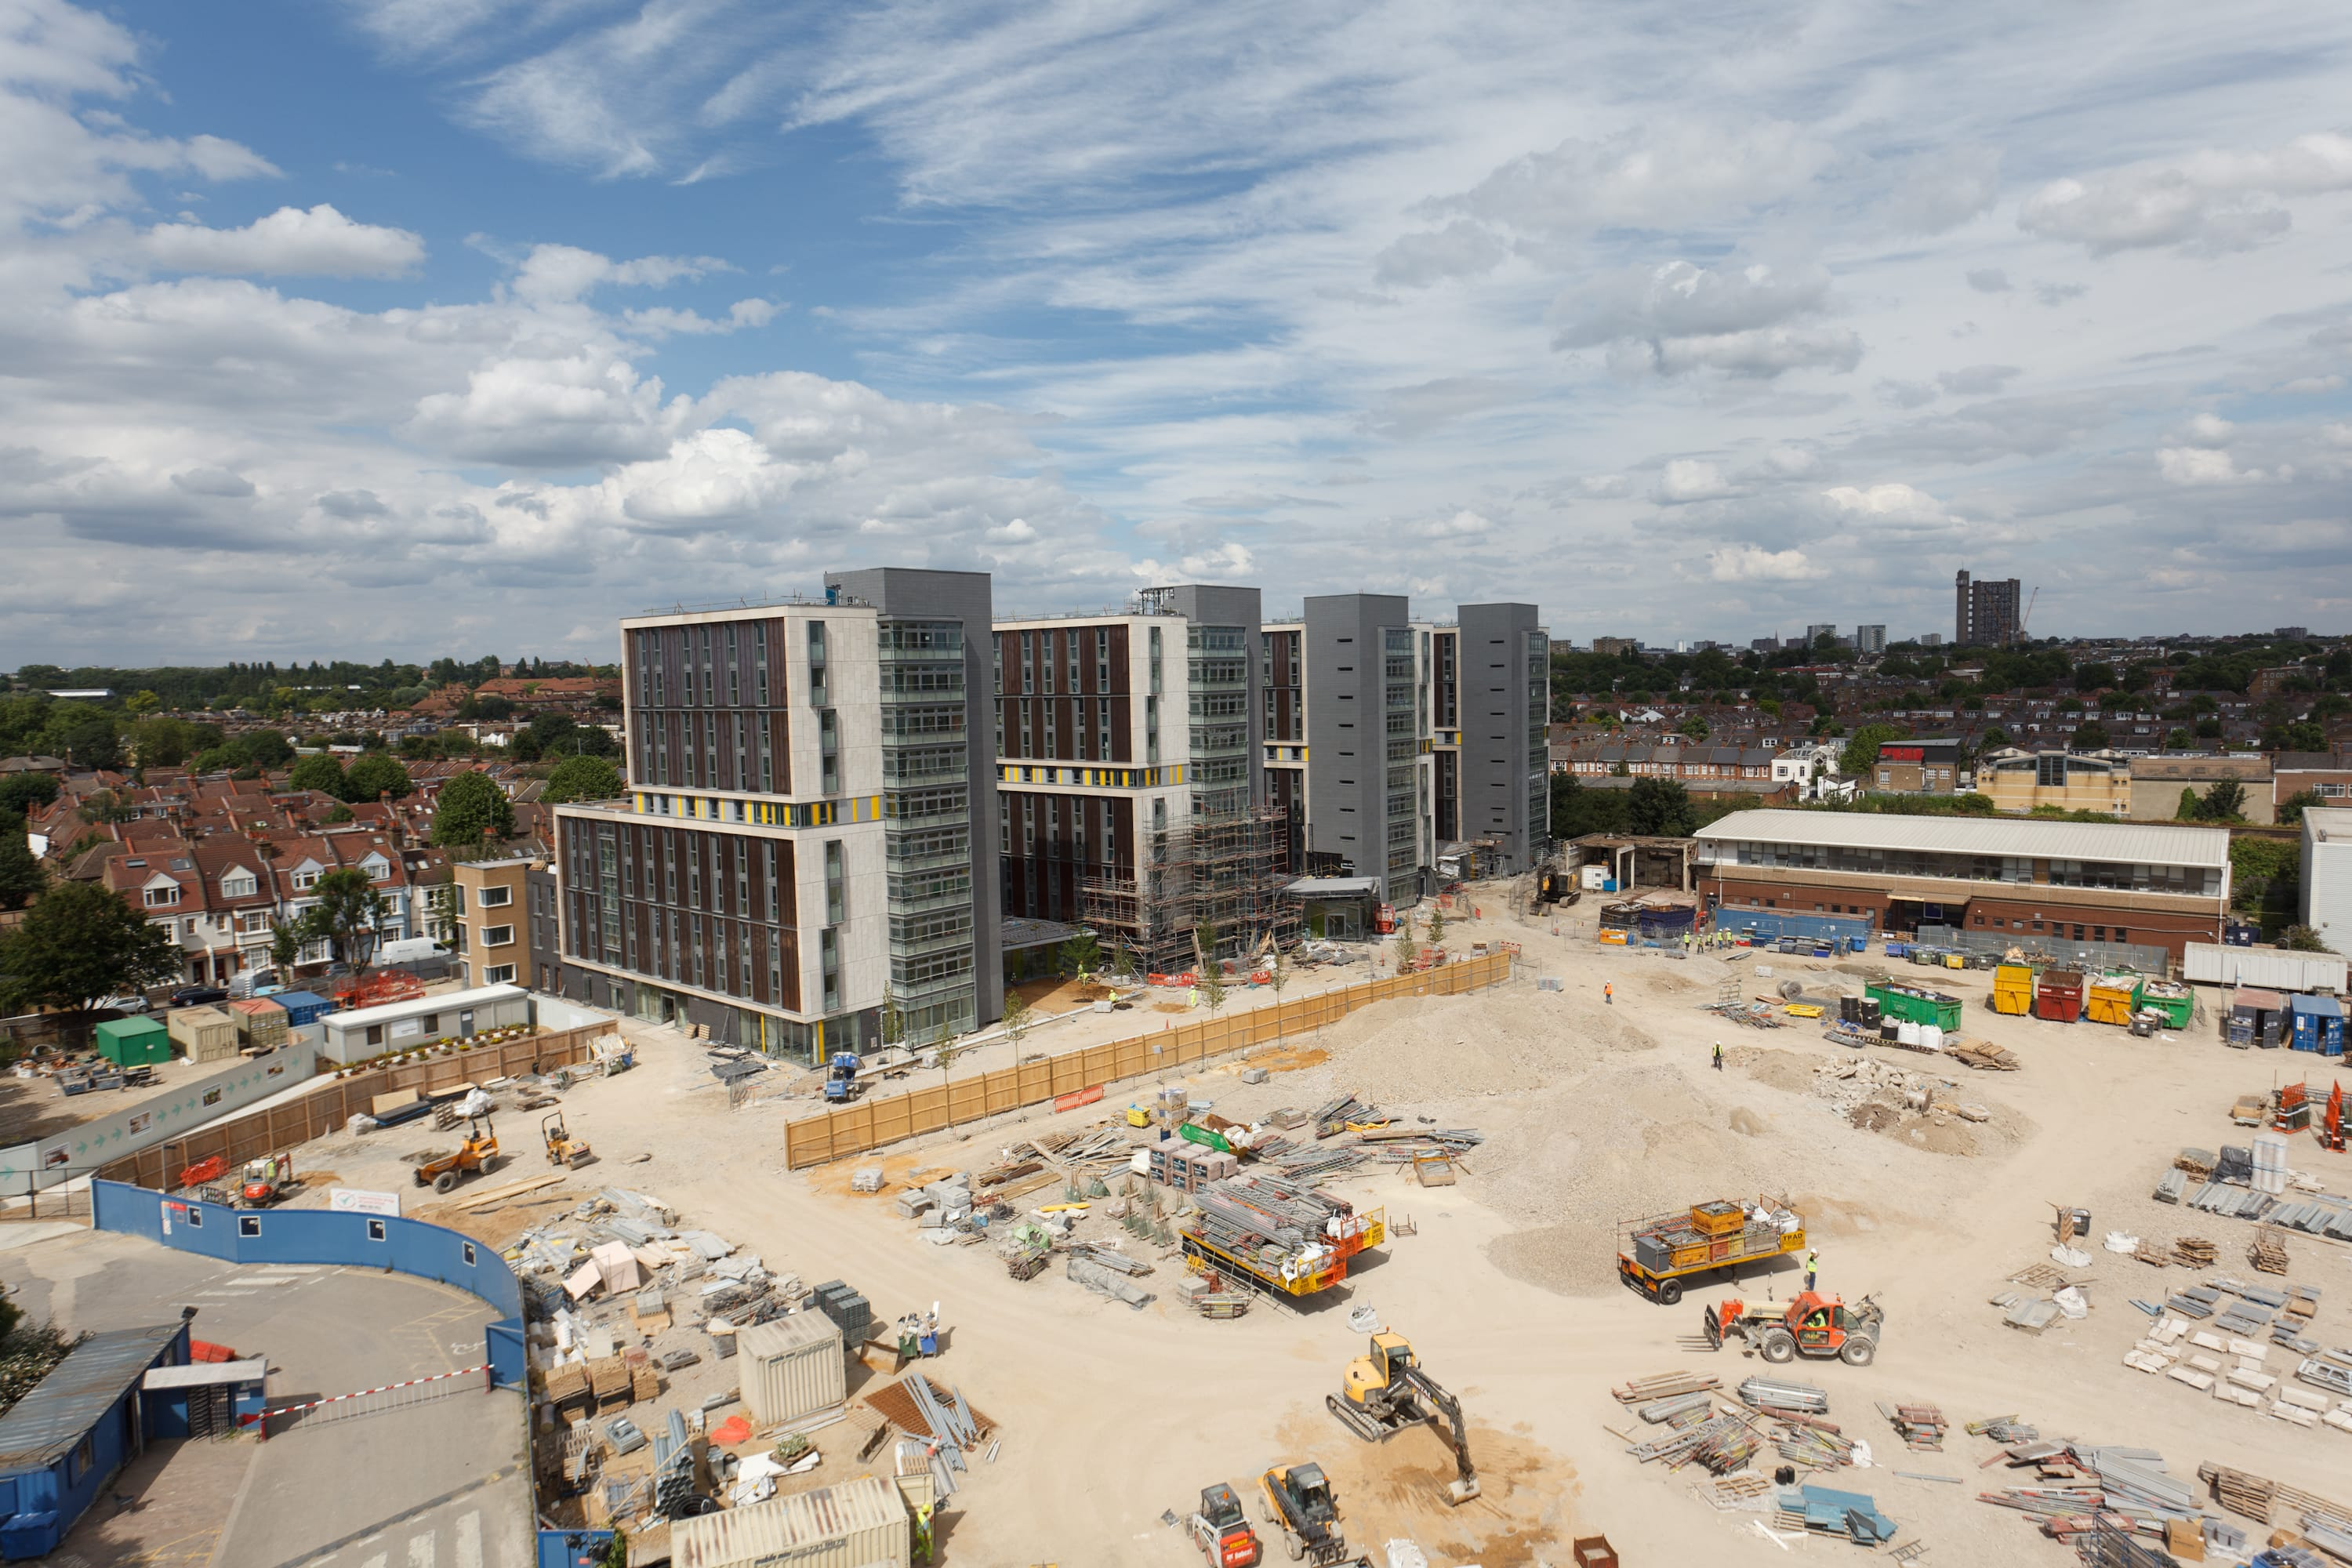 A finished phase of new Imperial College buildings on a still active construction site.